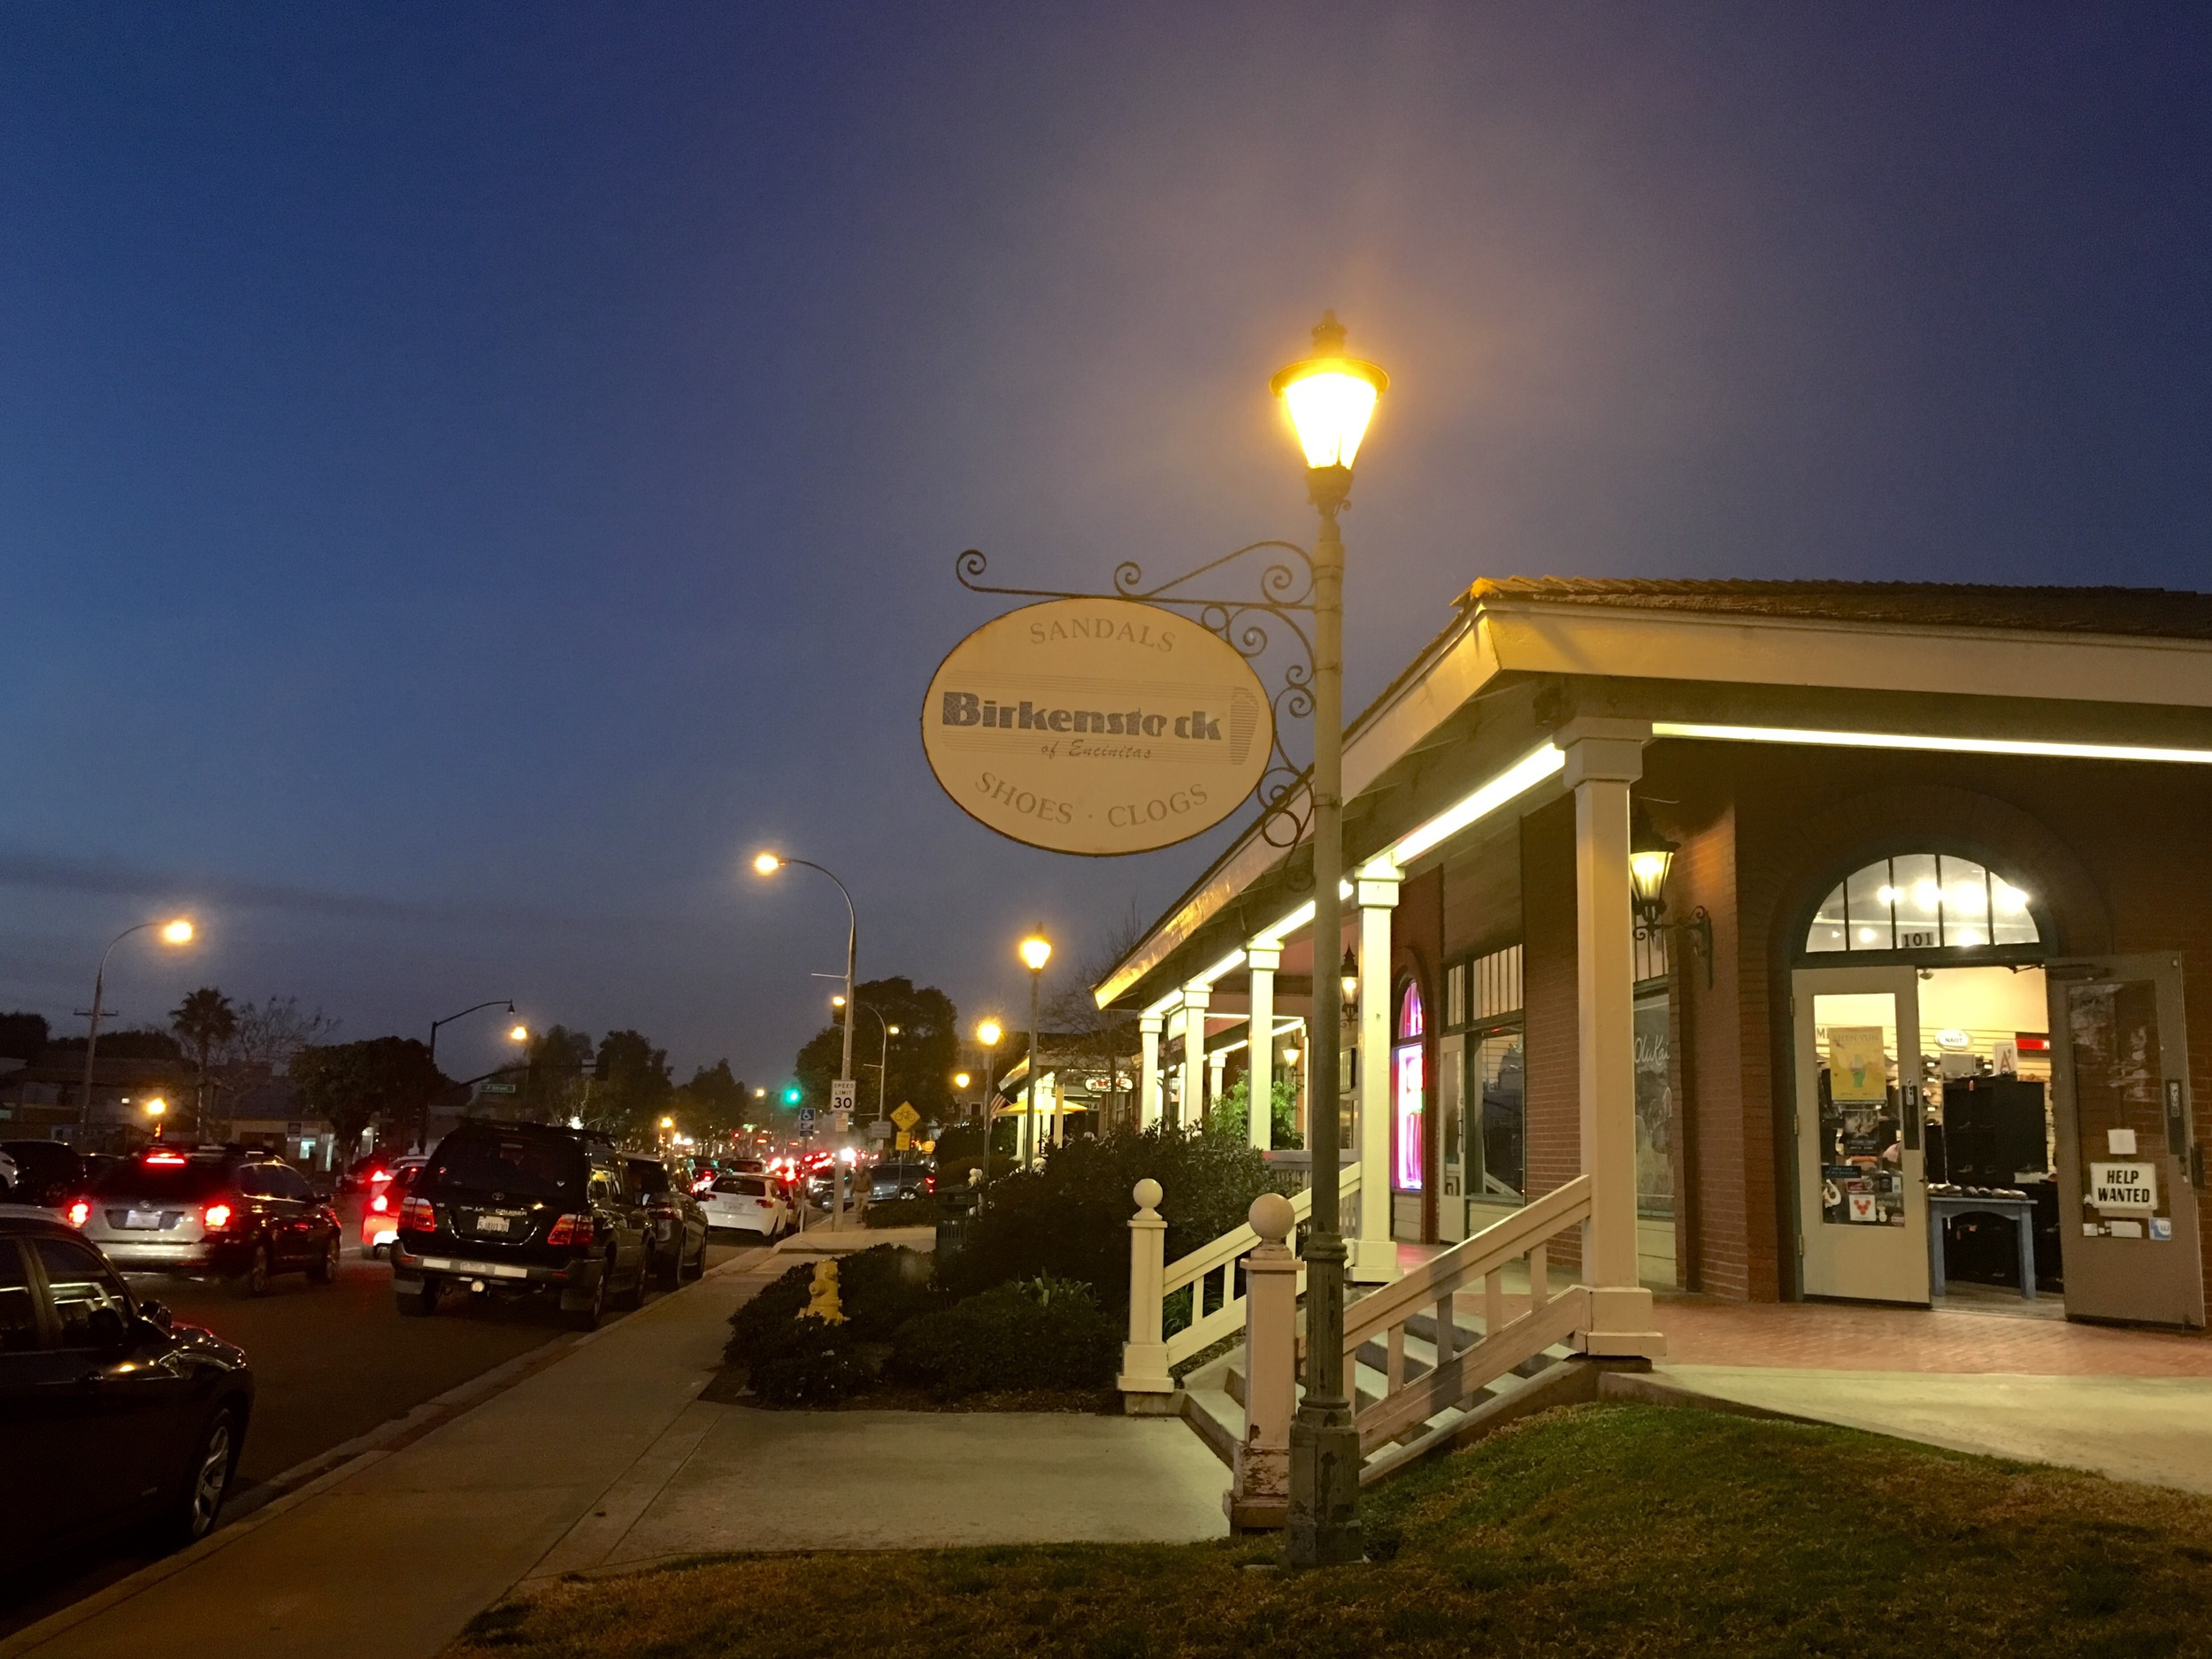 Birkenstock, Encinitas–one of my best shoe brands! I should not enter as I have shopped too much! Image©sourcingstyle.com